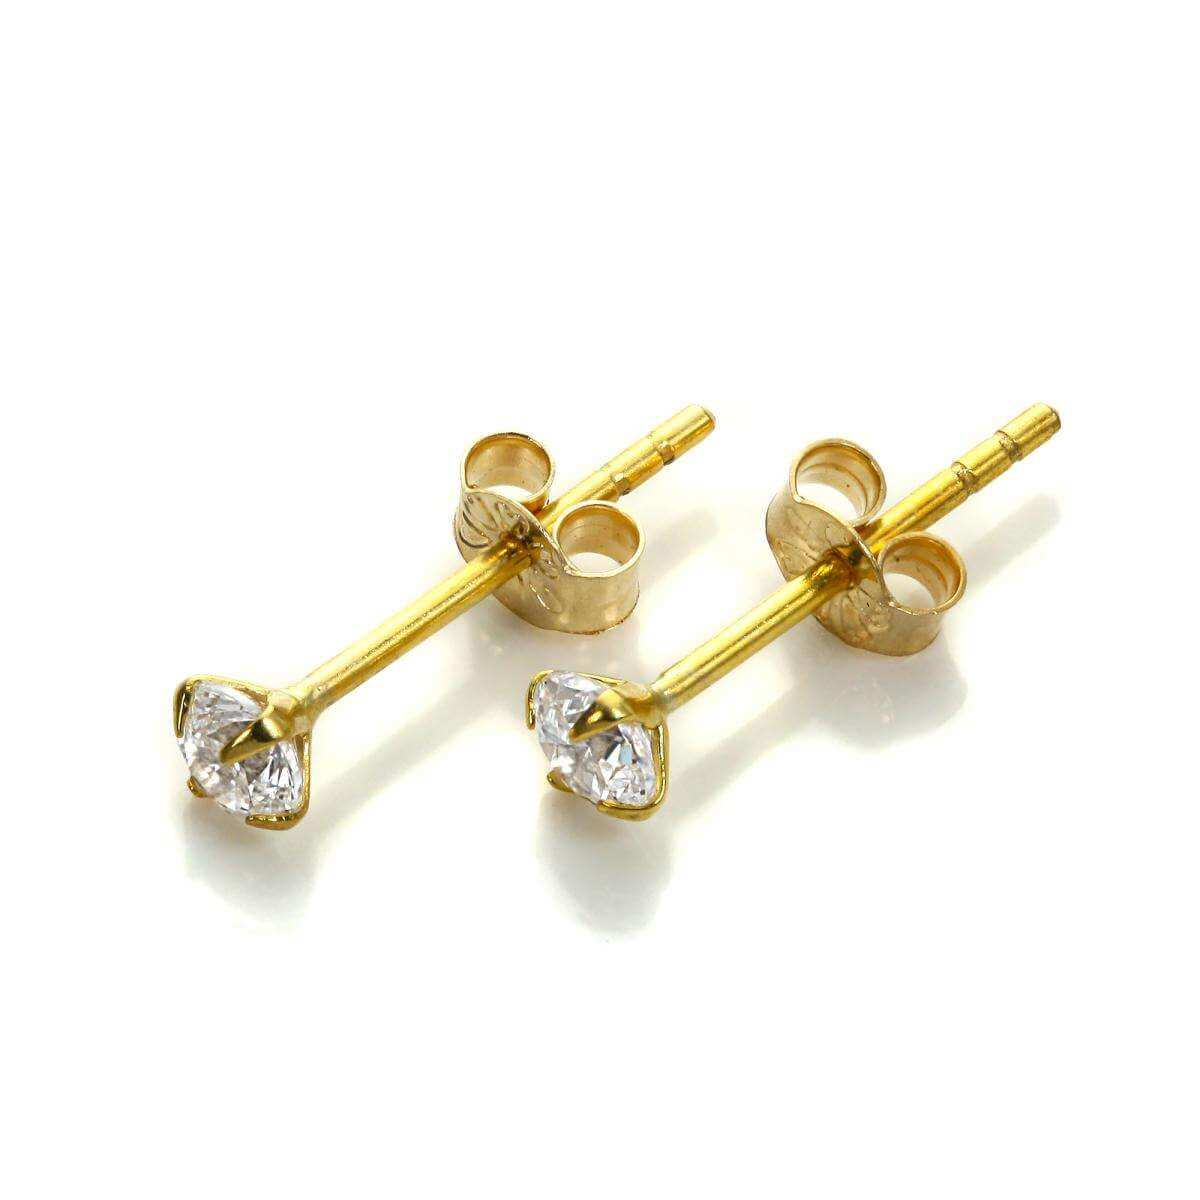 9ct Yellow Gold Clear CZ 3mm Stud Earrings